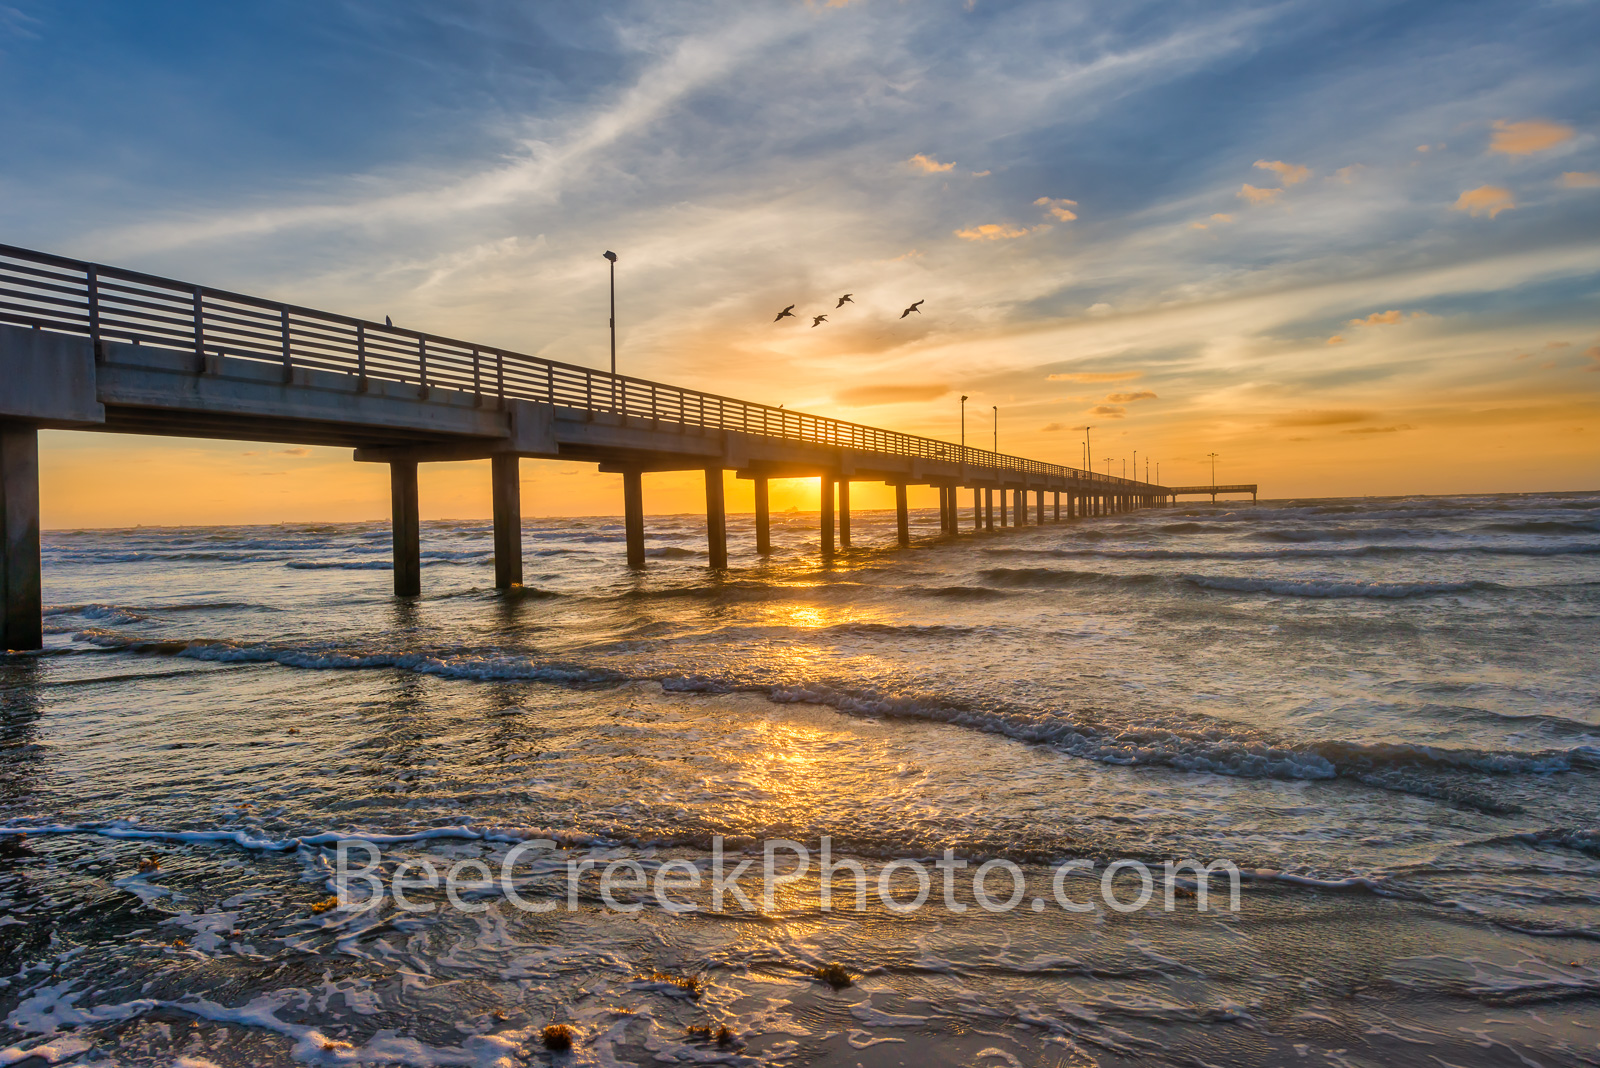 Texas Sunrise Glow Over the Pier - Texas Sunrise glow at the coast early morning at the Caldwell fishing pier we capture this...